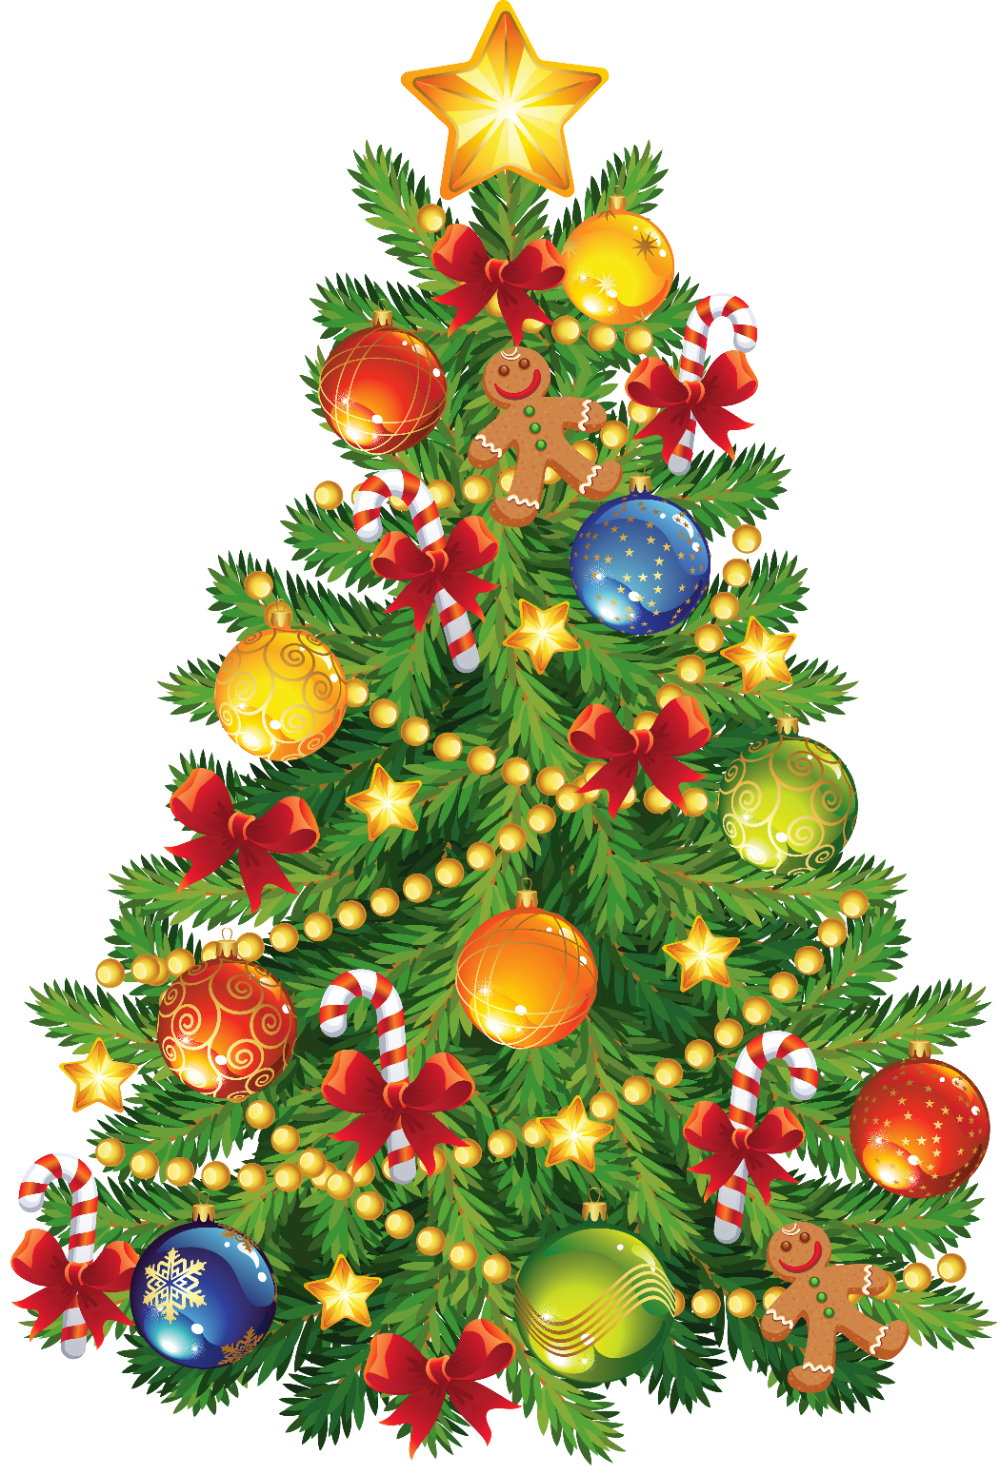 Christmas Tree Clipart Free Clip Art Library Christmas Drawing Christmas Tree Images Christmas Tree Clipart